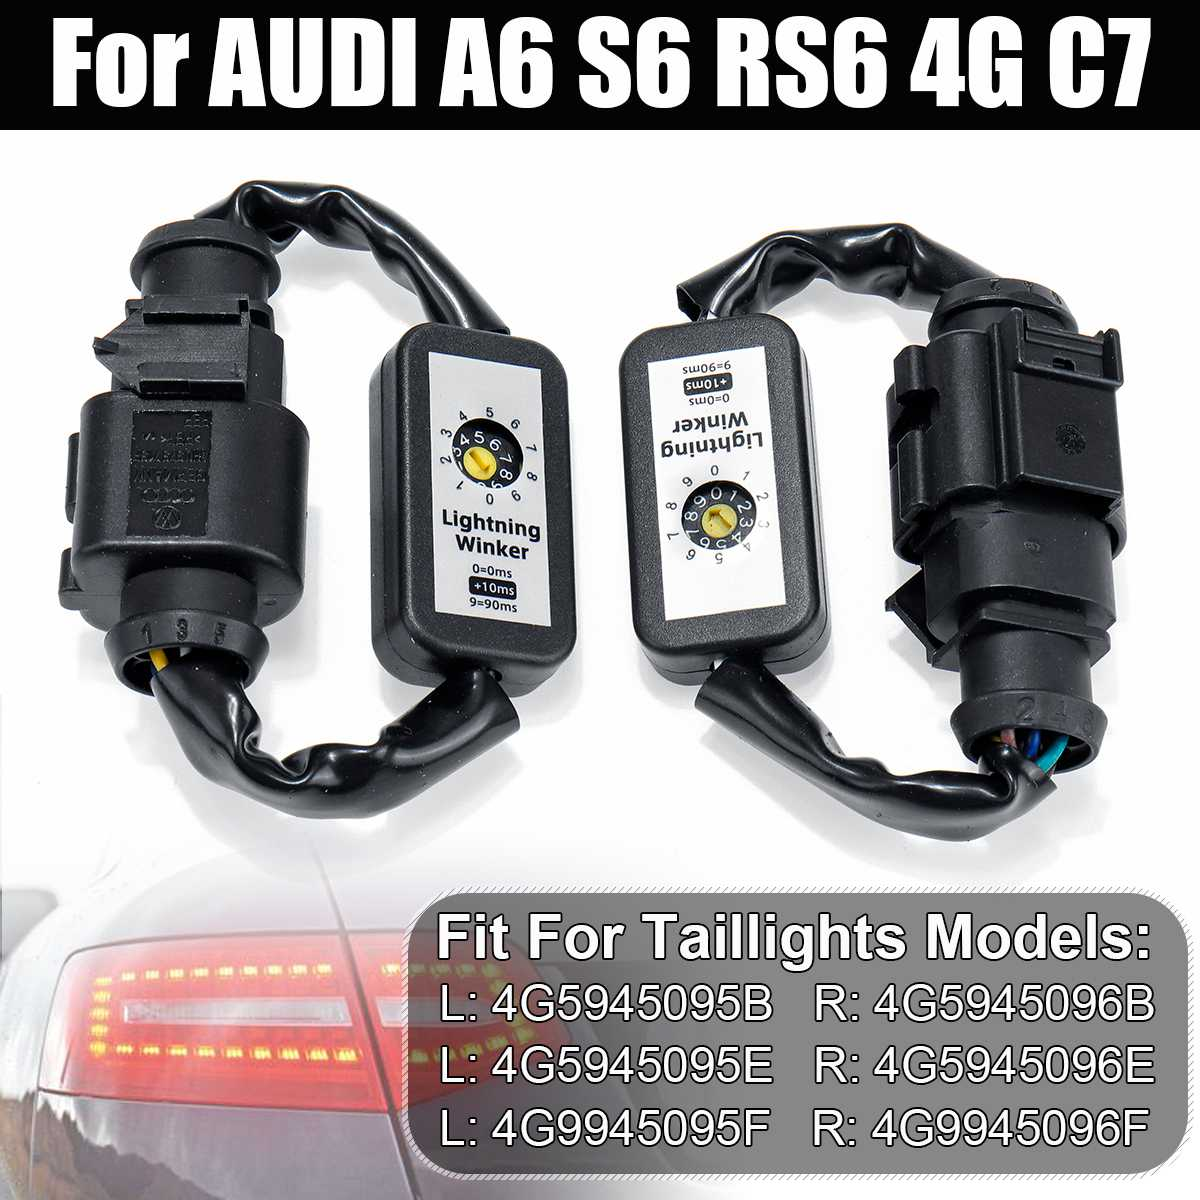 2pcs Dynamic Turn Signal Indicator LED Taillight Add on Module Cable Wire Harness For AUDI A6 S6 RS6 4G C7 Left&Right Tail Light